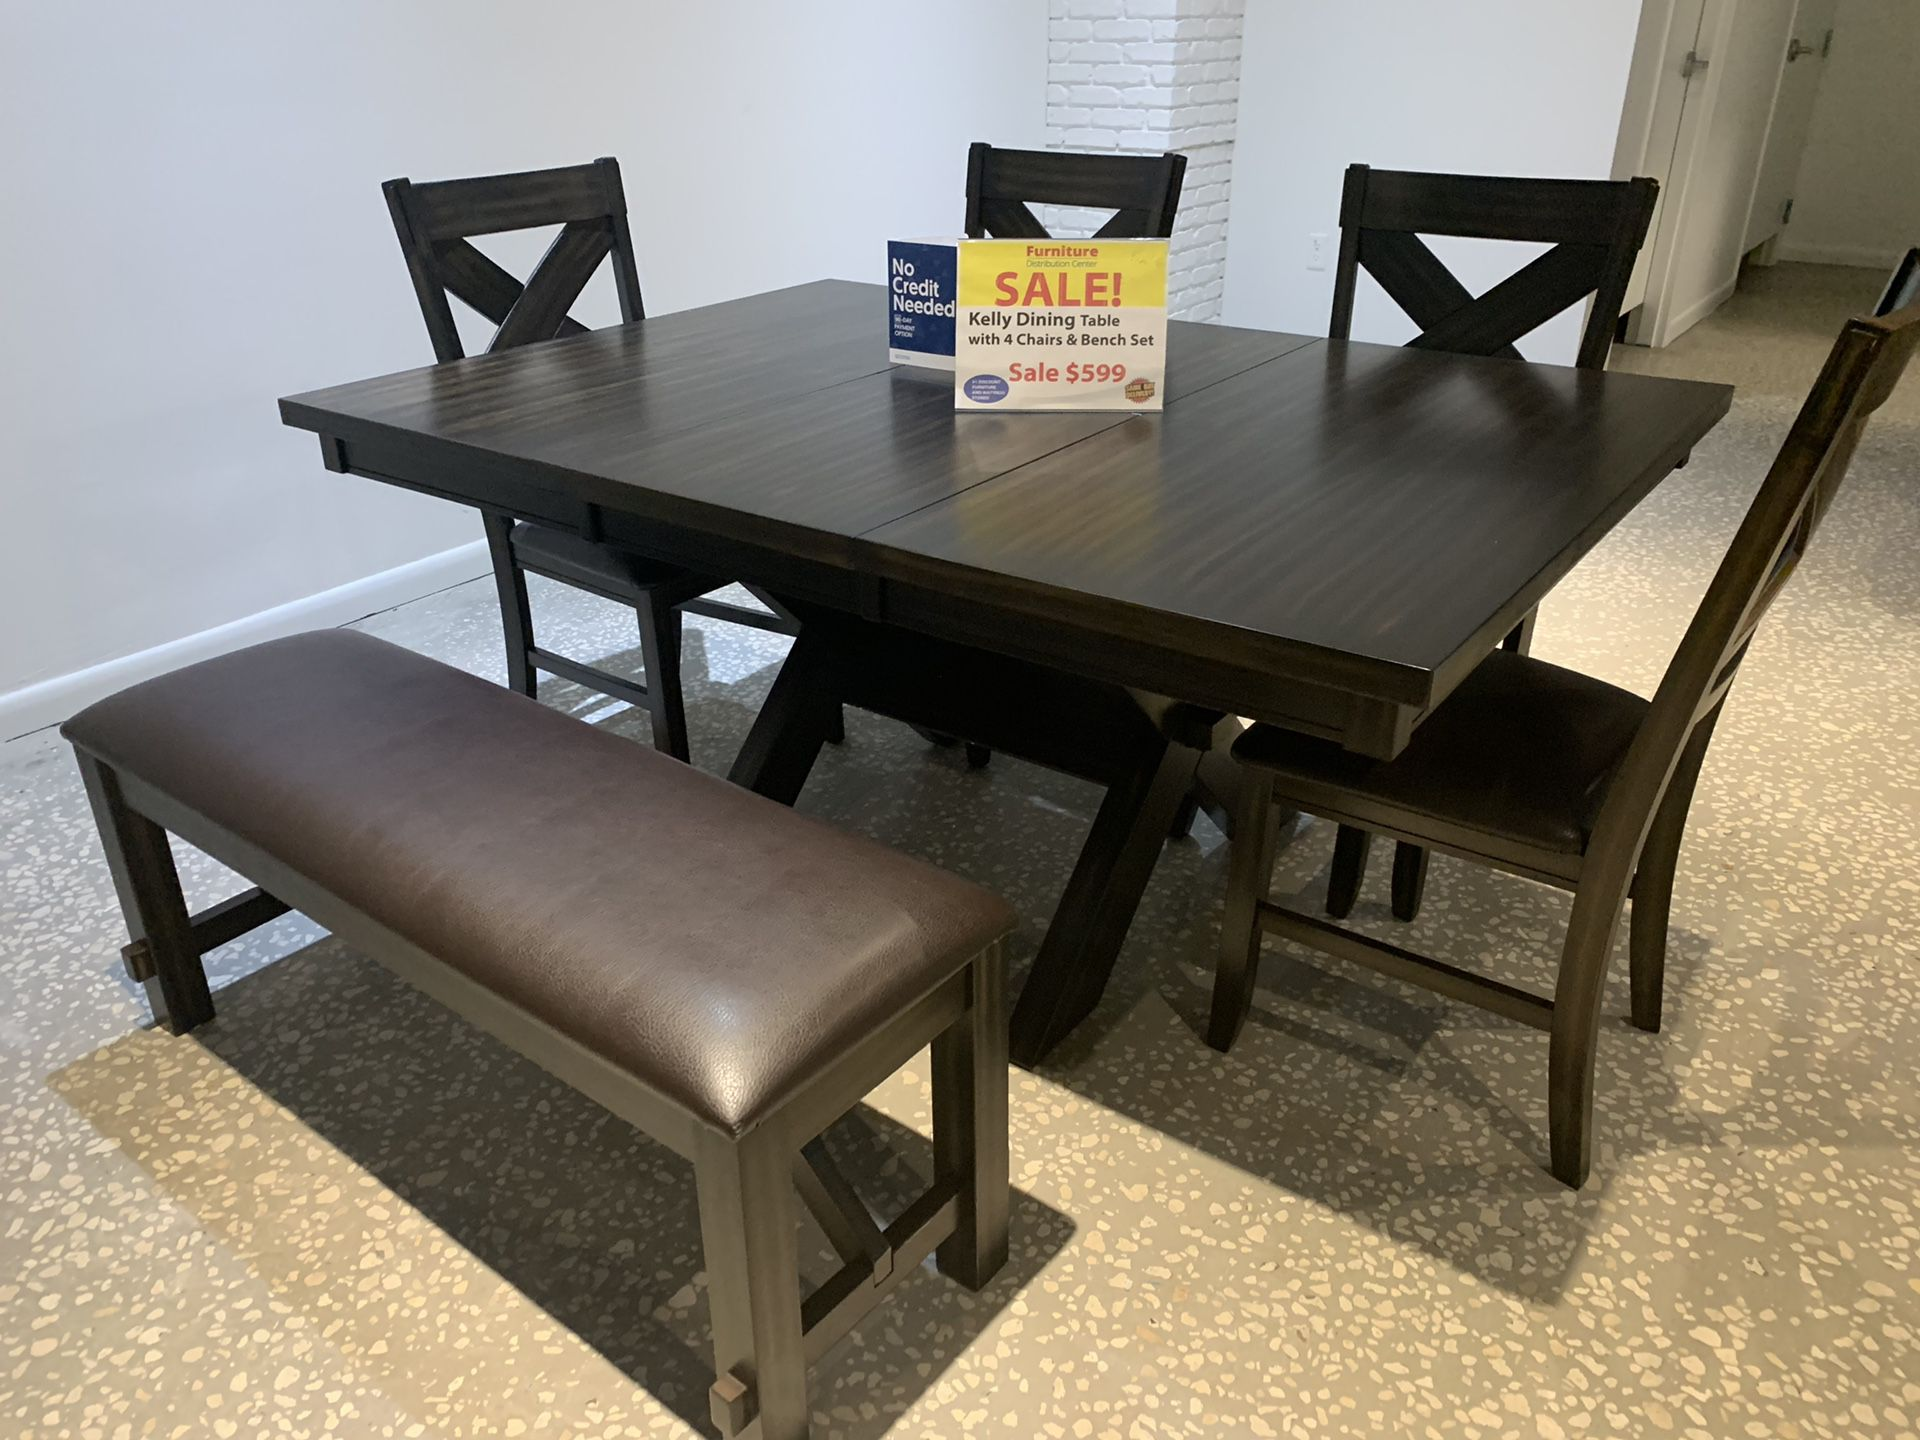 Kelly dining table with 4 chairs and bench, IN STOCK, SAME DAY DELIVERY, LOWEST PRICES IN FLORIDA ONLY $599